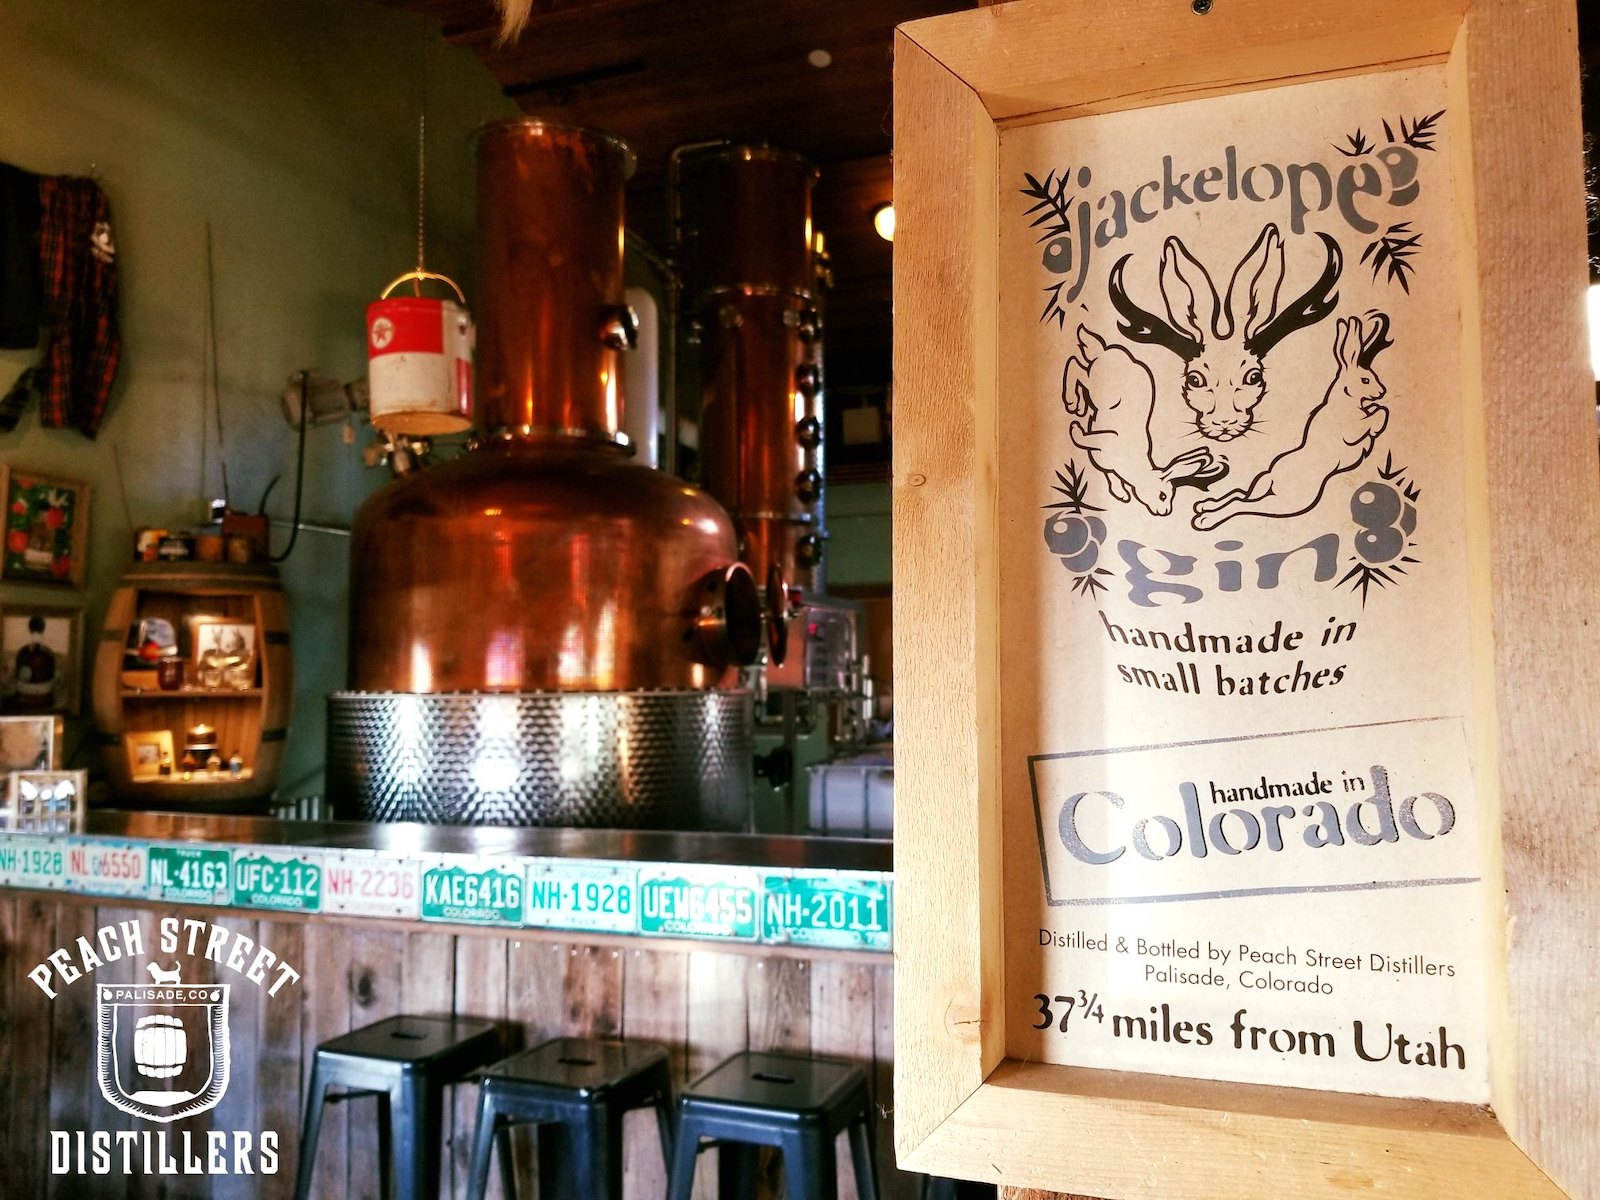 Image of a sign for the Jackelope spirit made at Peach Street Distillers